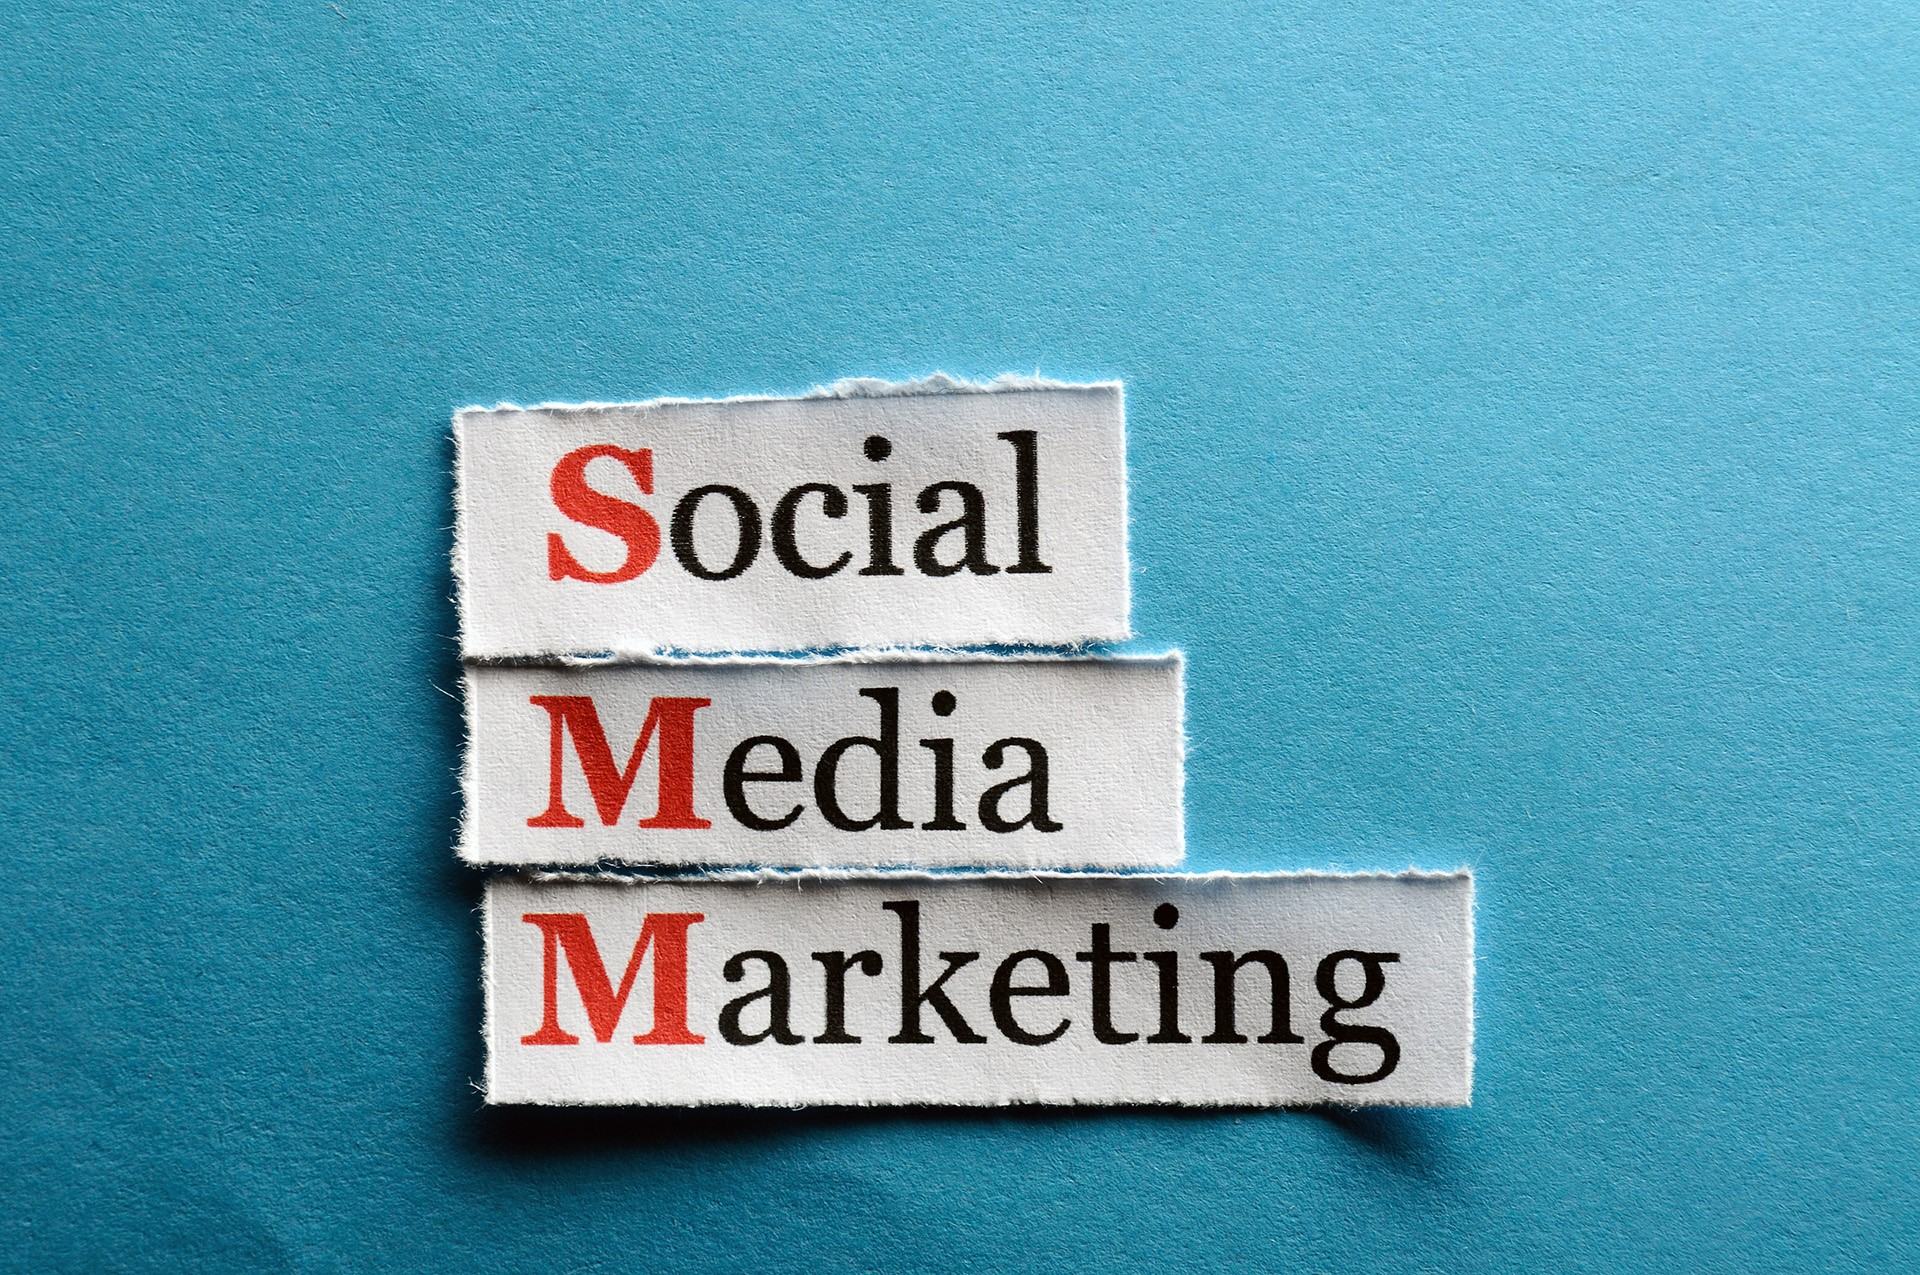 Social Media Marketing Solutions for Small Businesses